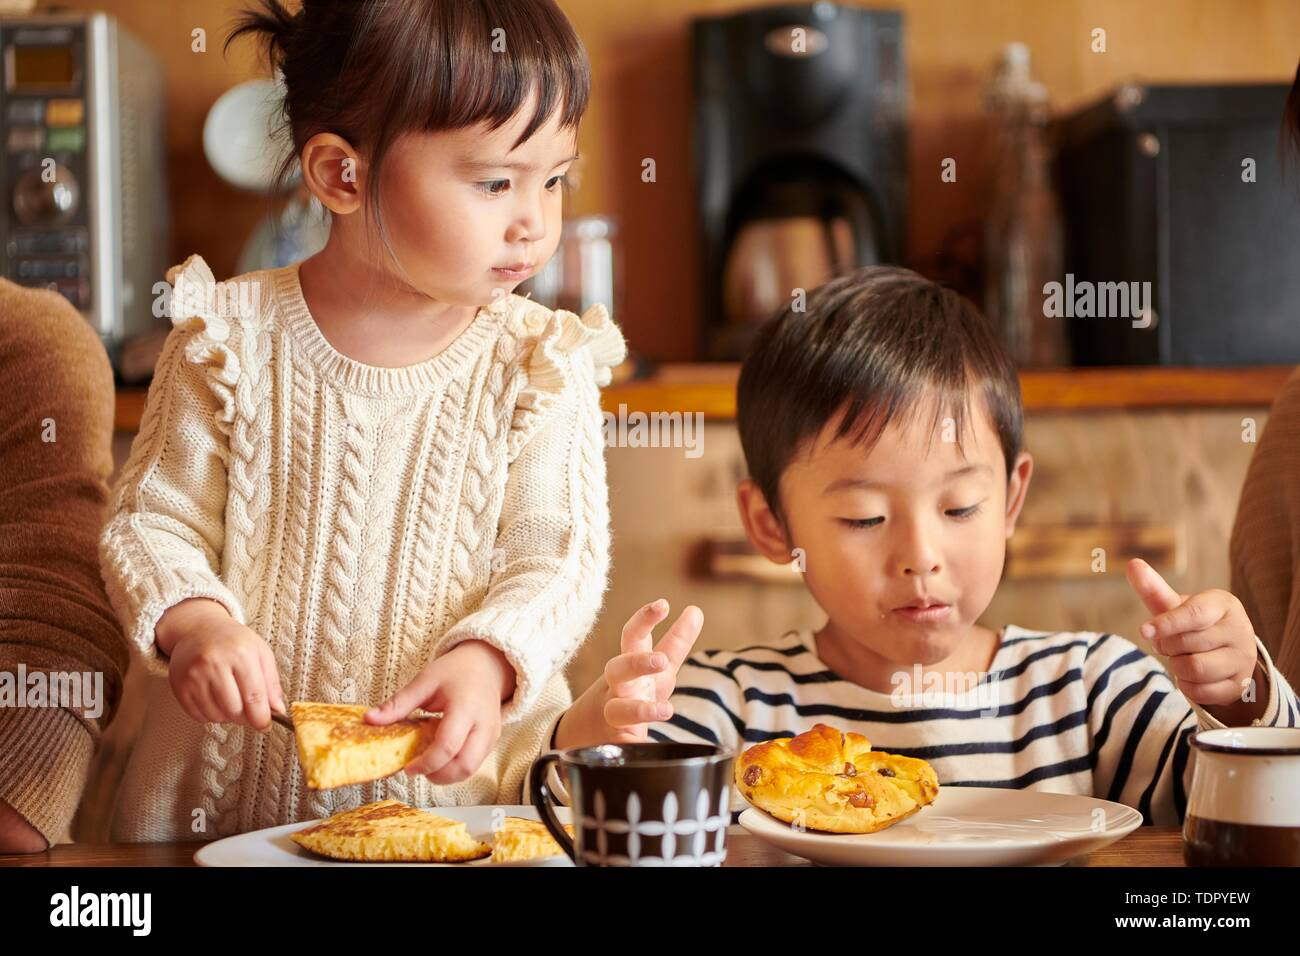 Japanese kids at home - Stock Image